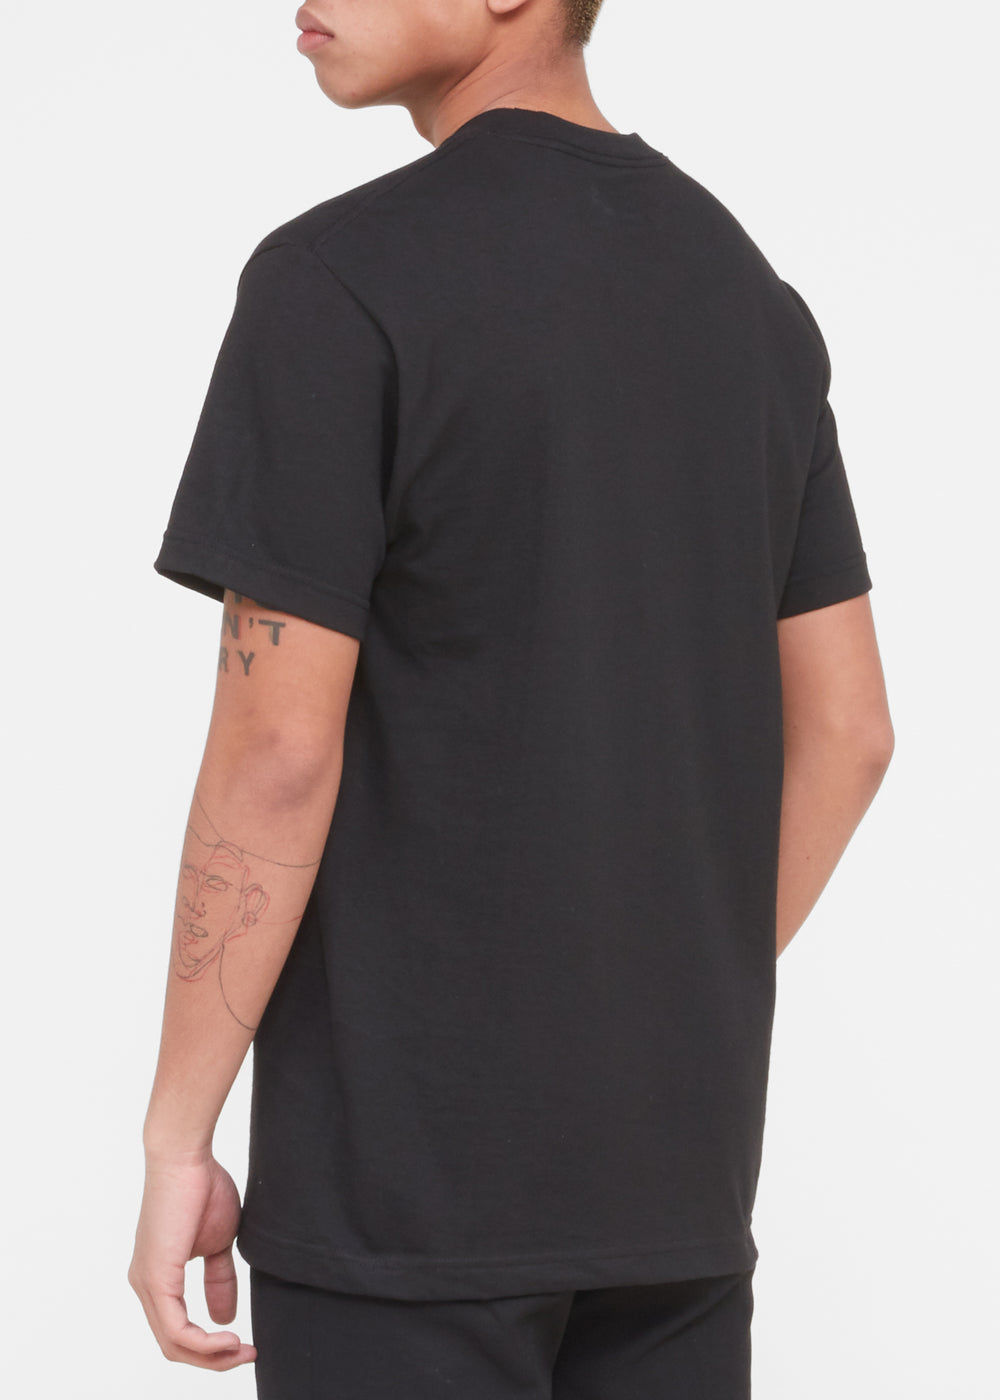 sound-system-tee-ctmhol19-sst-blk-blk-3